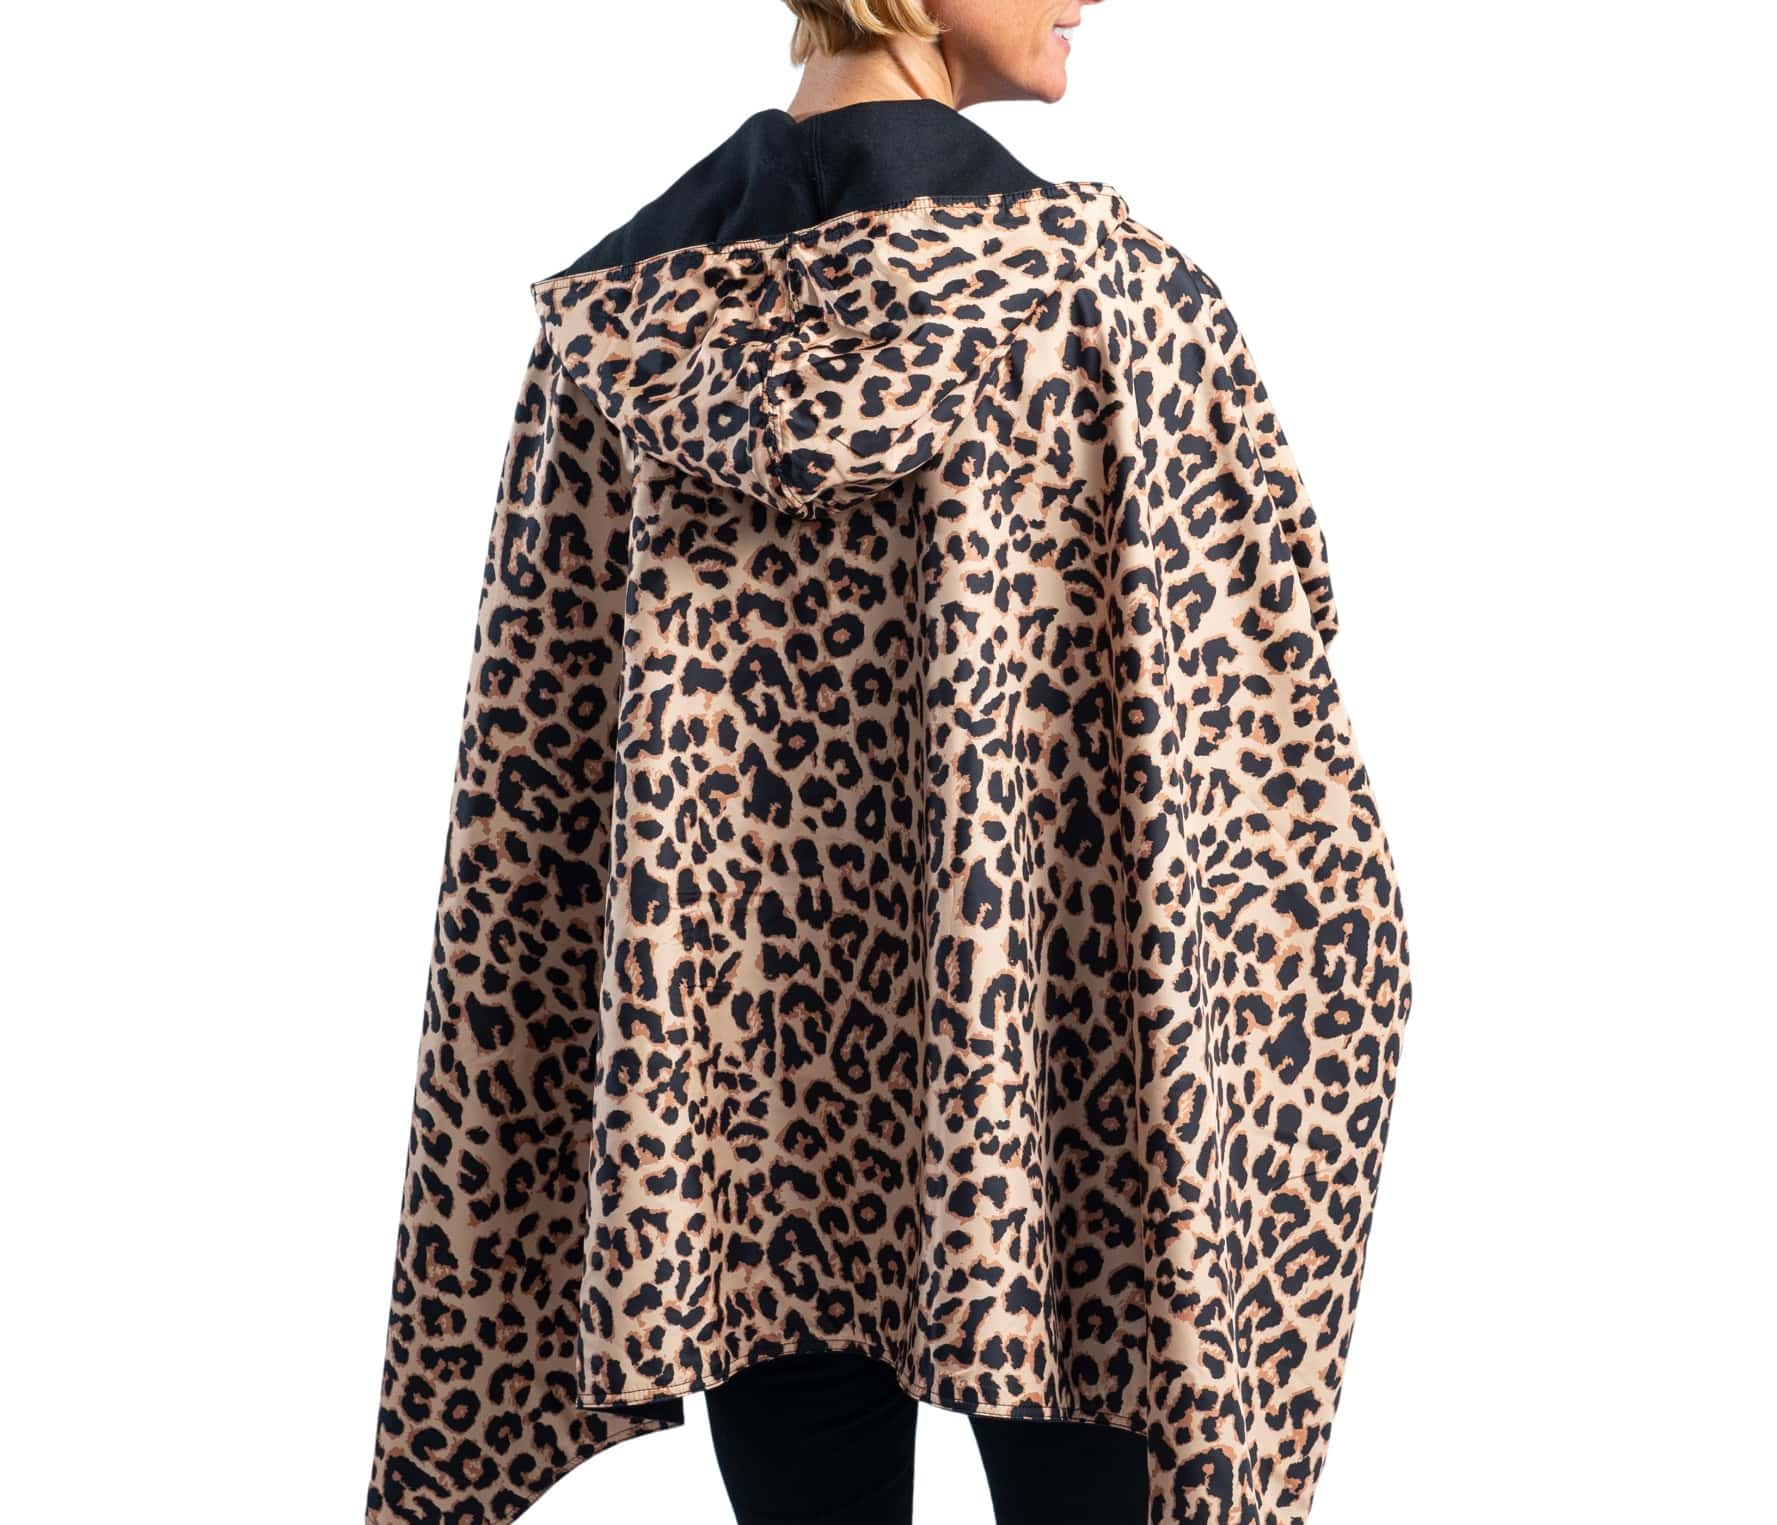 Woman wearing a WarmCaper Warm Black & Rainproof Leopard lined rain and travel cape by RainCaper.